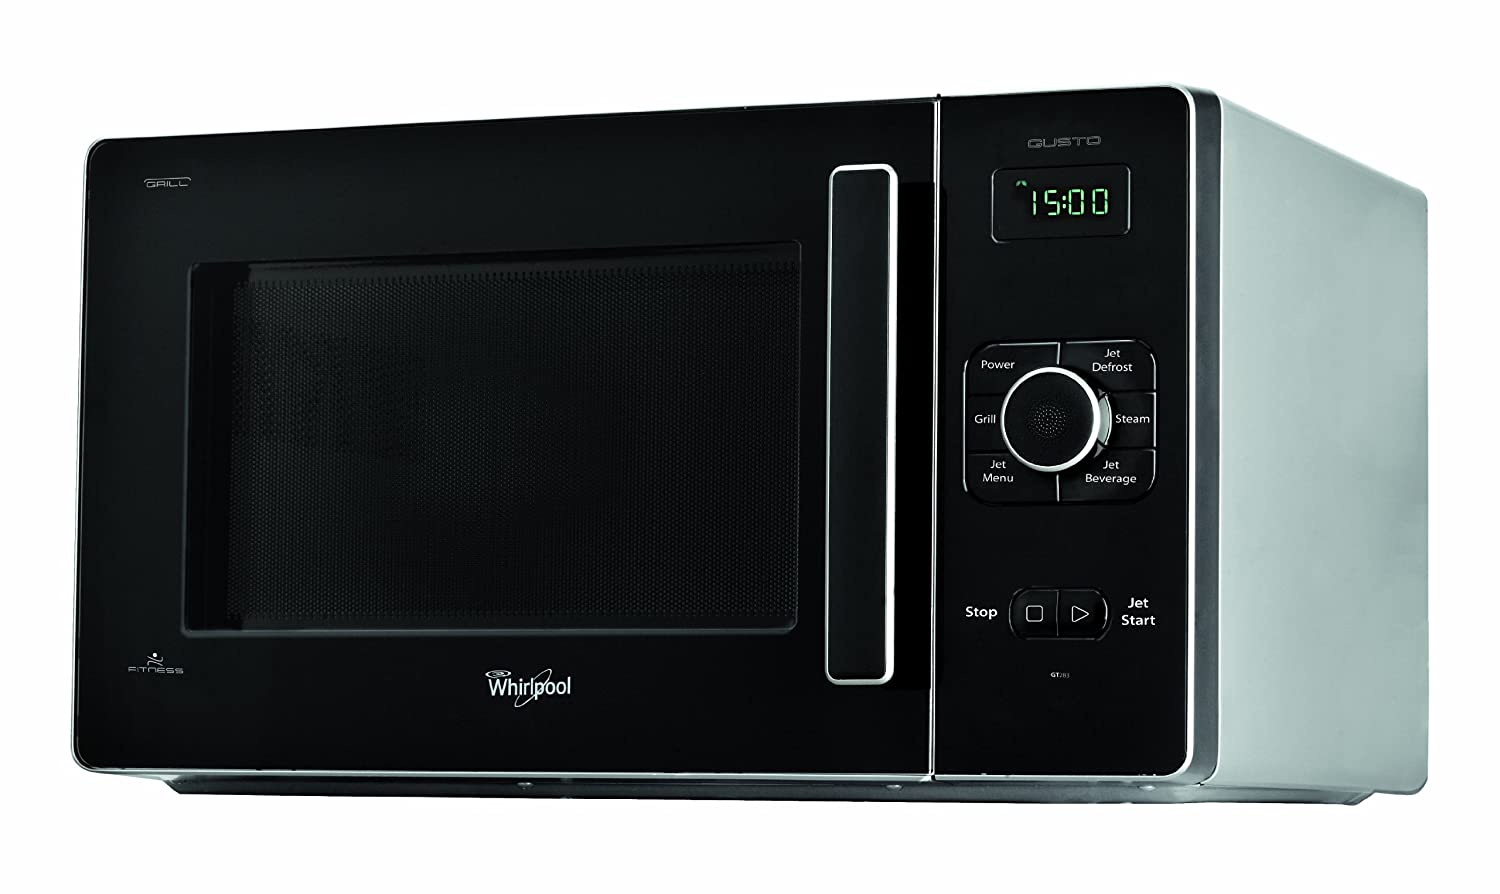 Whilrpool Gusto GT283/SL Microonde grill, Argento Whirlpool microonde; microwave; elettrodomestico; forno; cottura